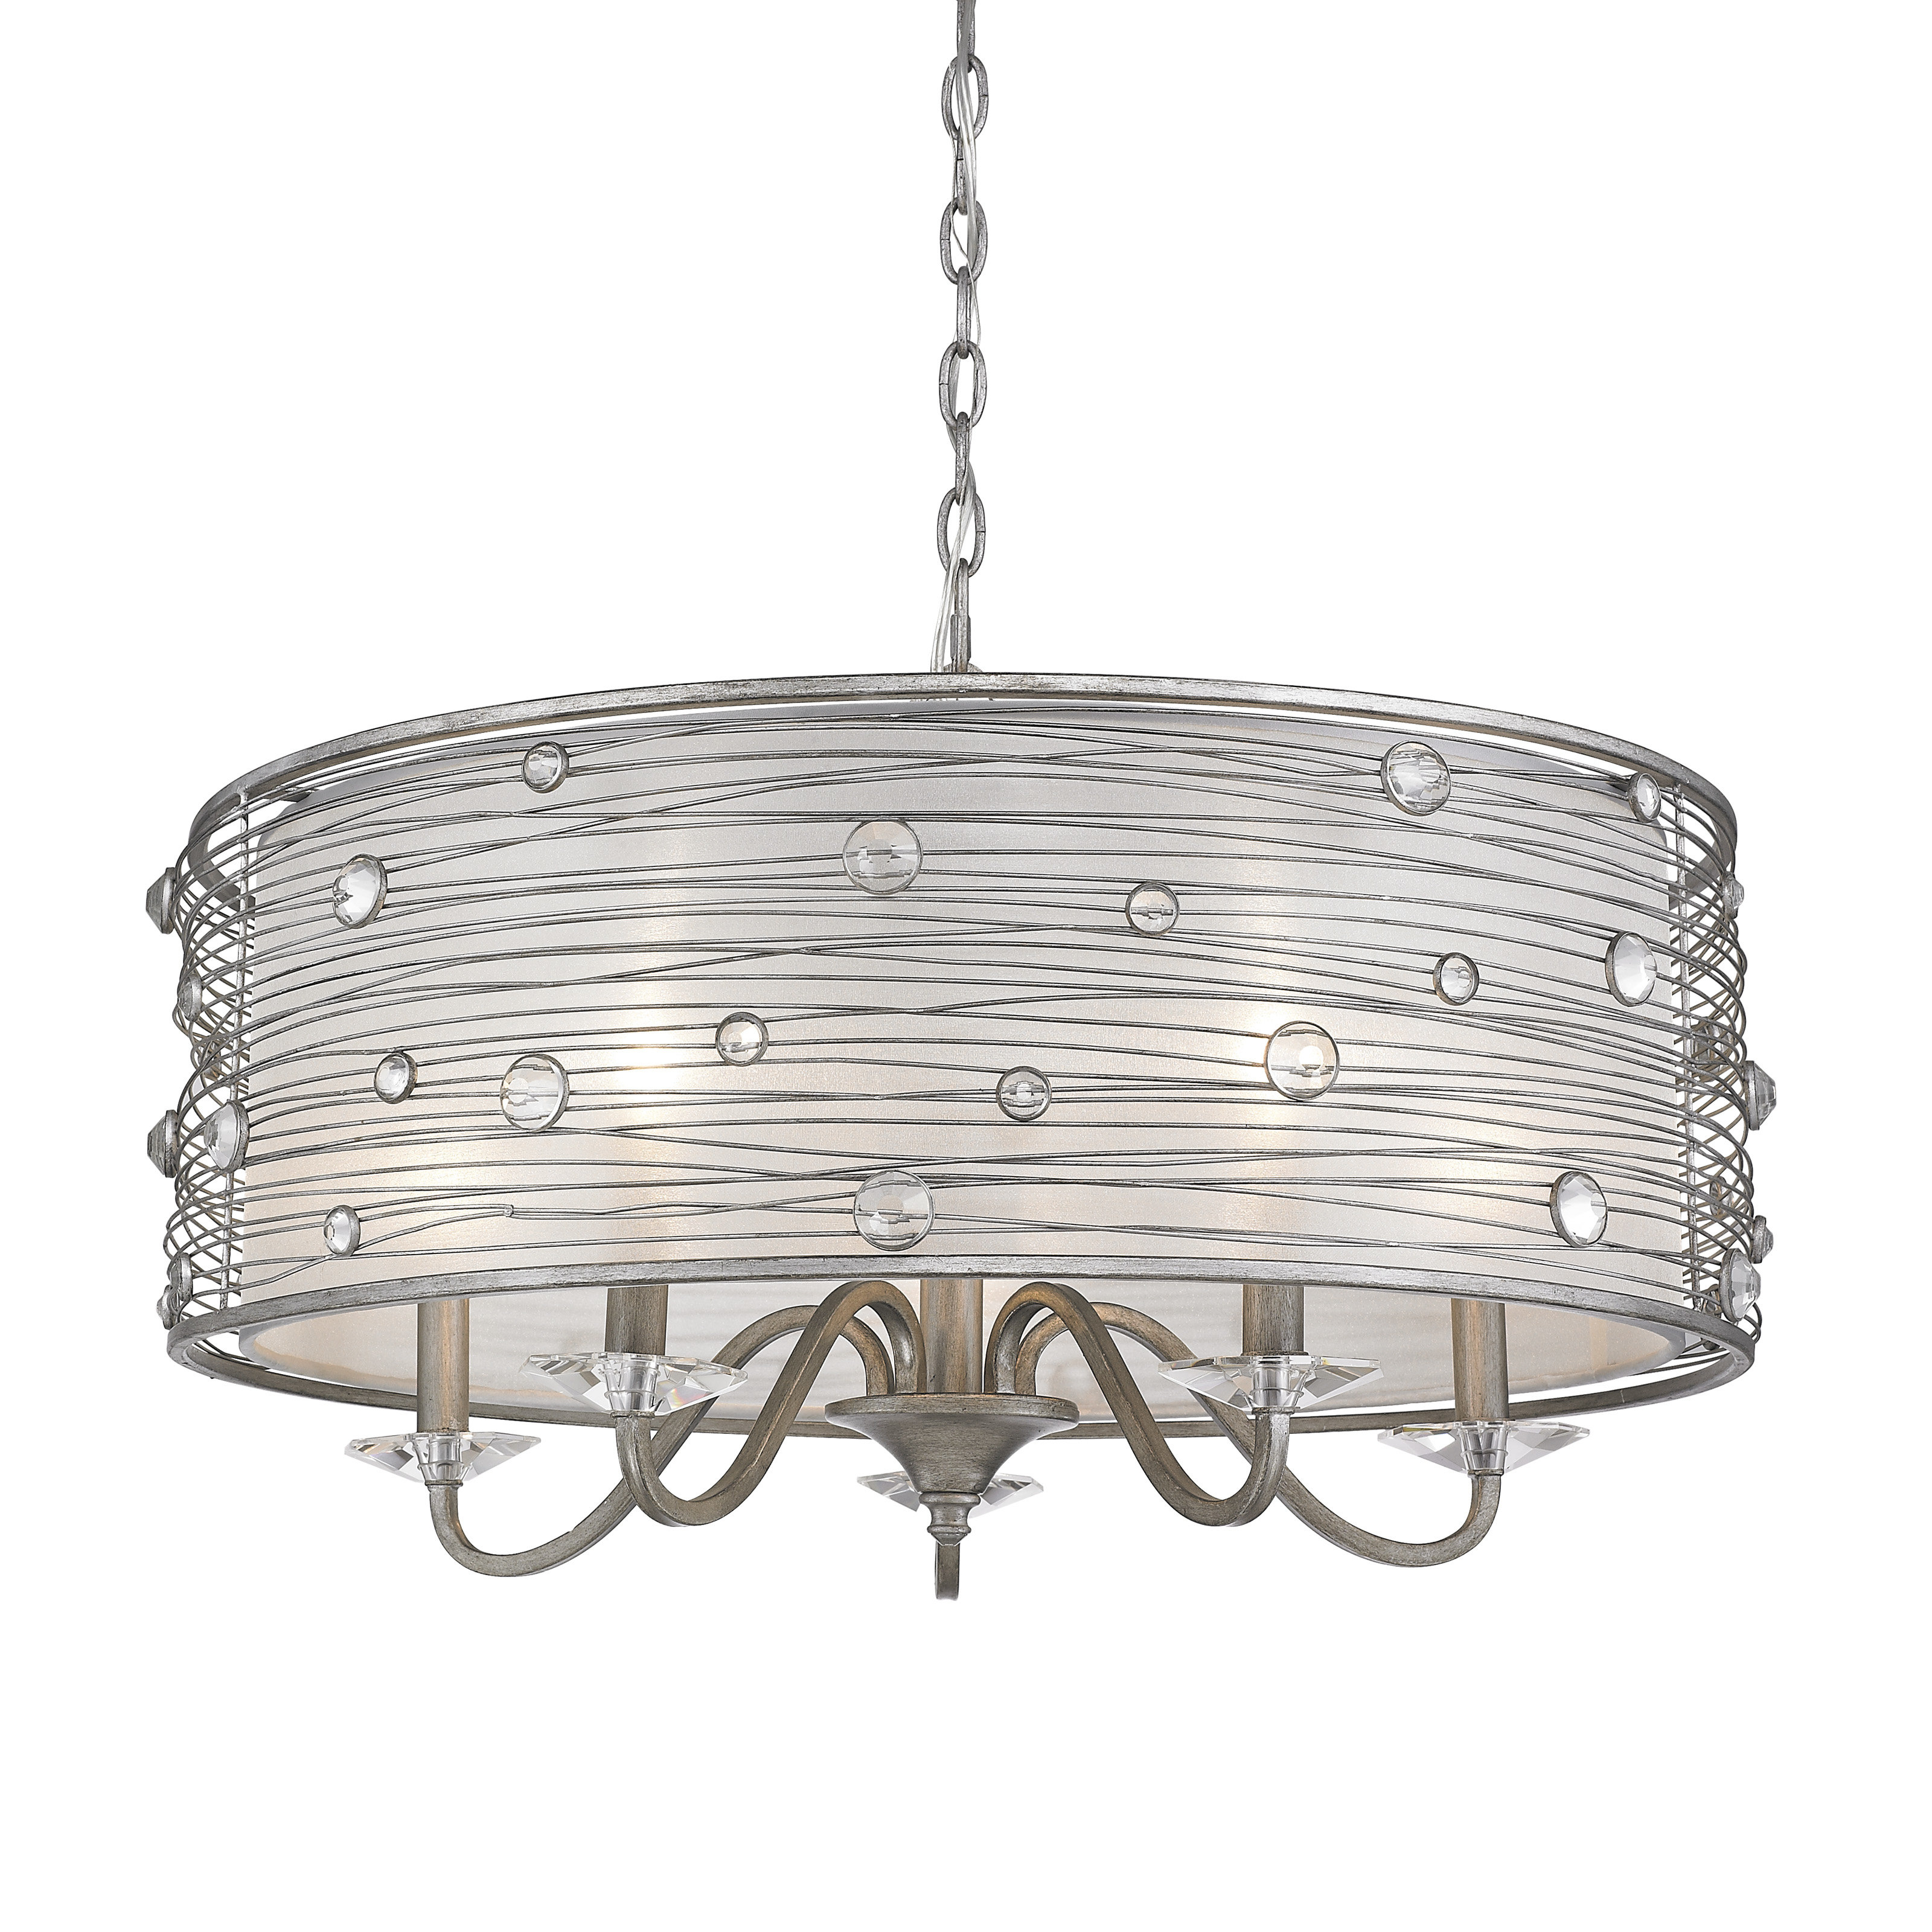 Hermione 5-Light Drum Chandeliers for Most Current Hermione 5-Light Drum Chandelier